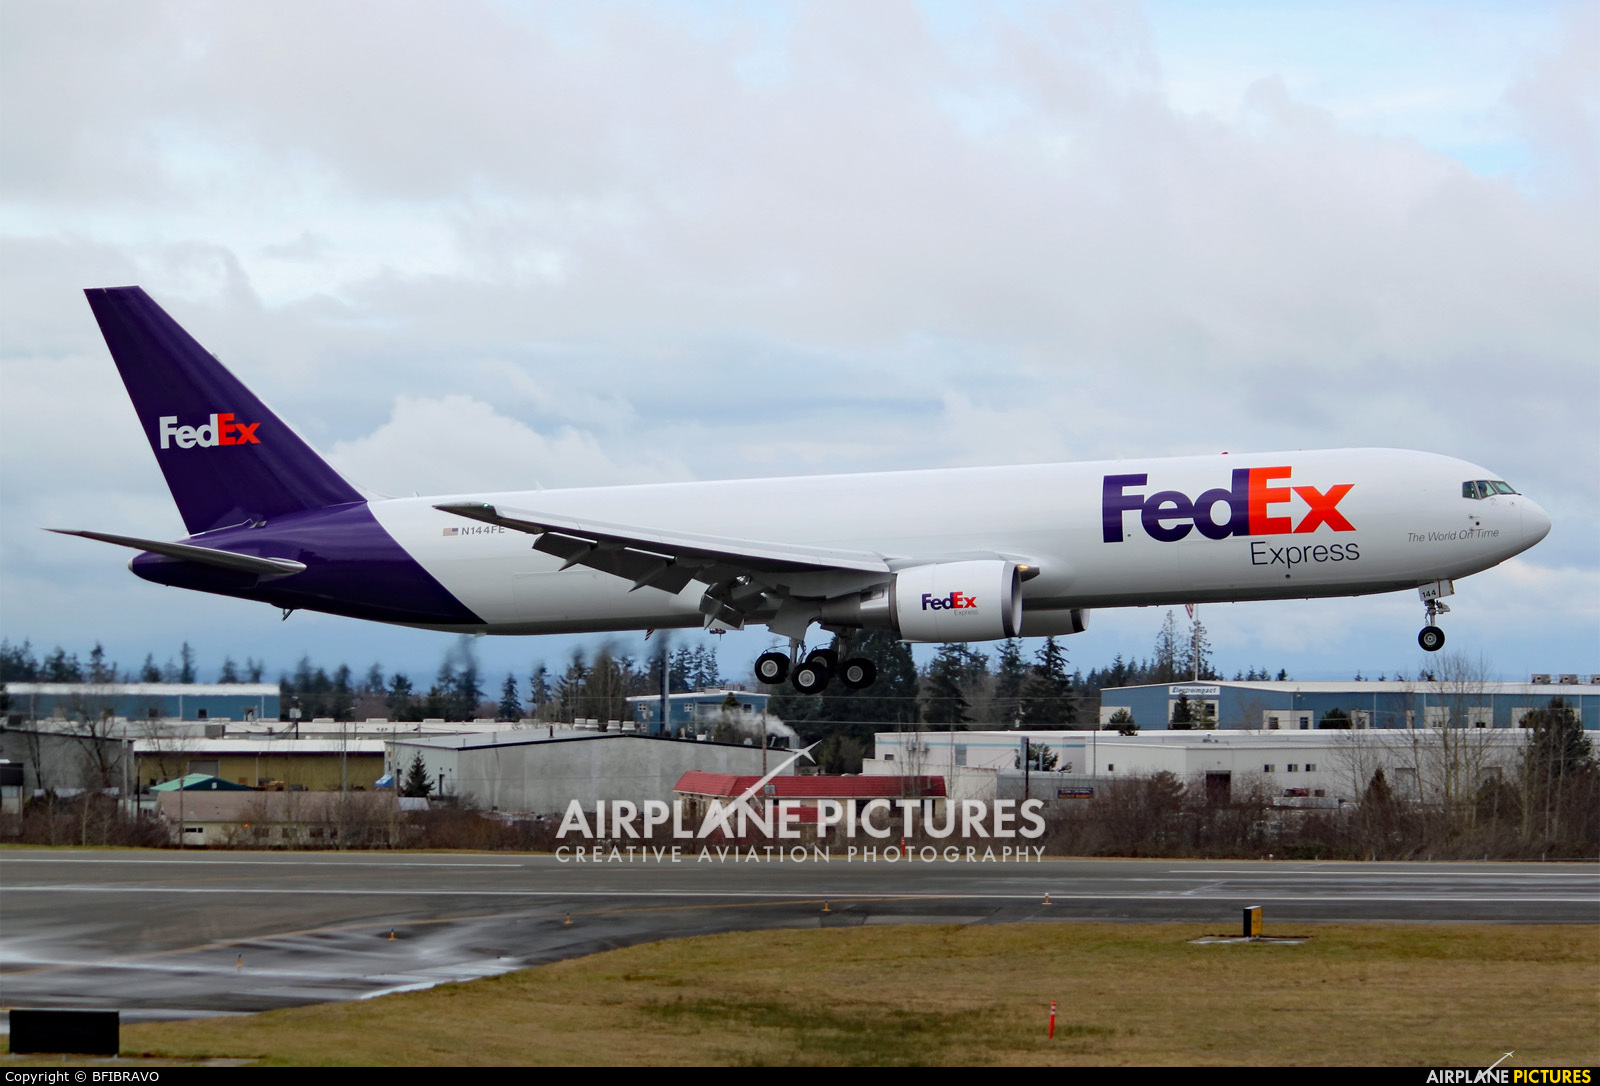 FedEx Federal Express Photos | Airplane-Pictures.net